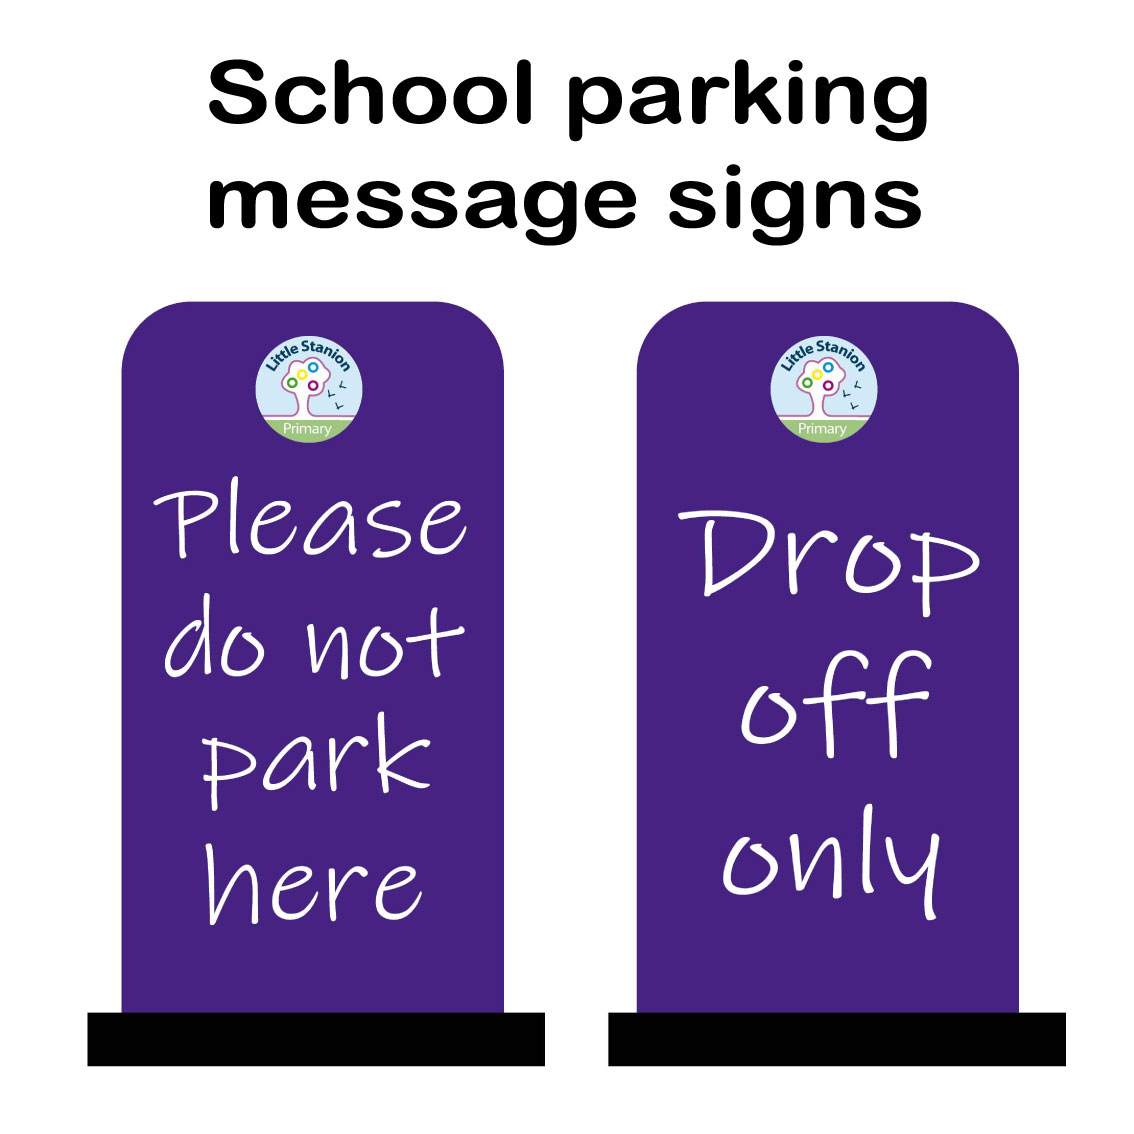 School parking message signs